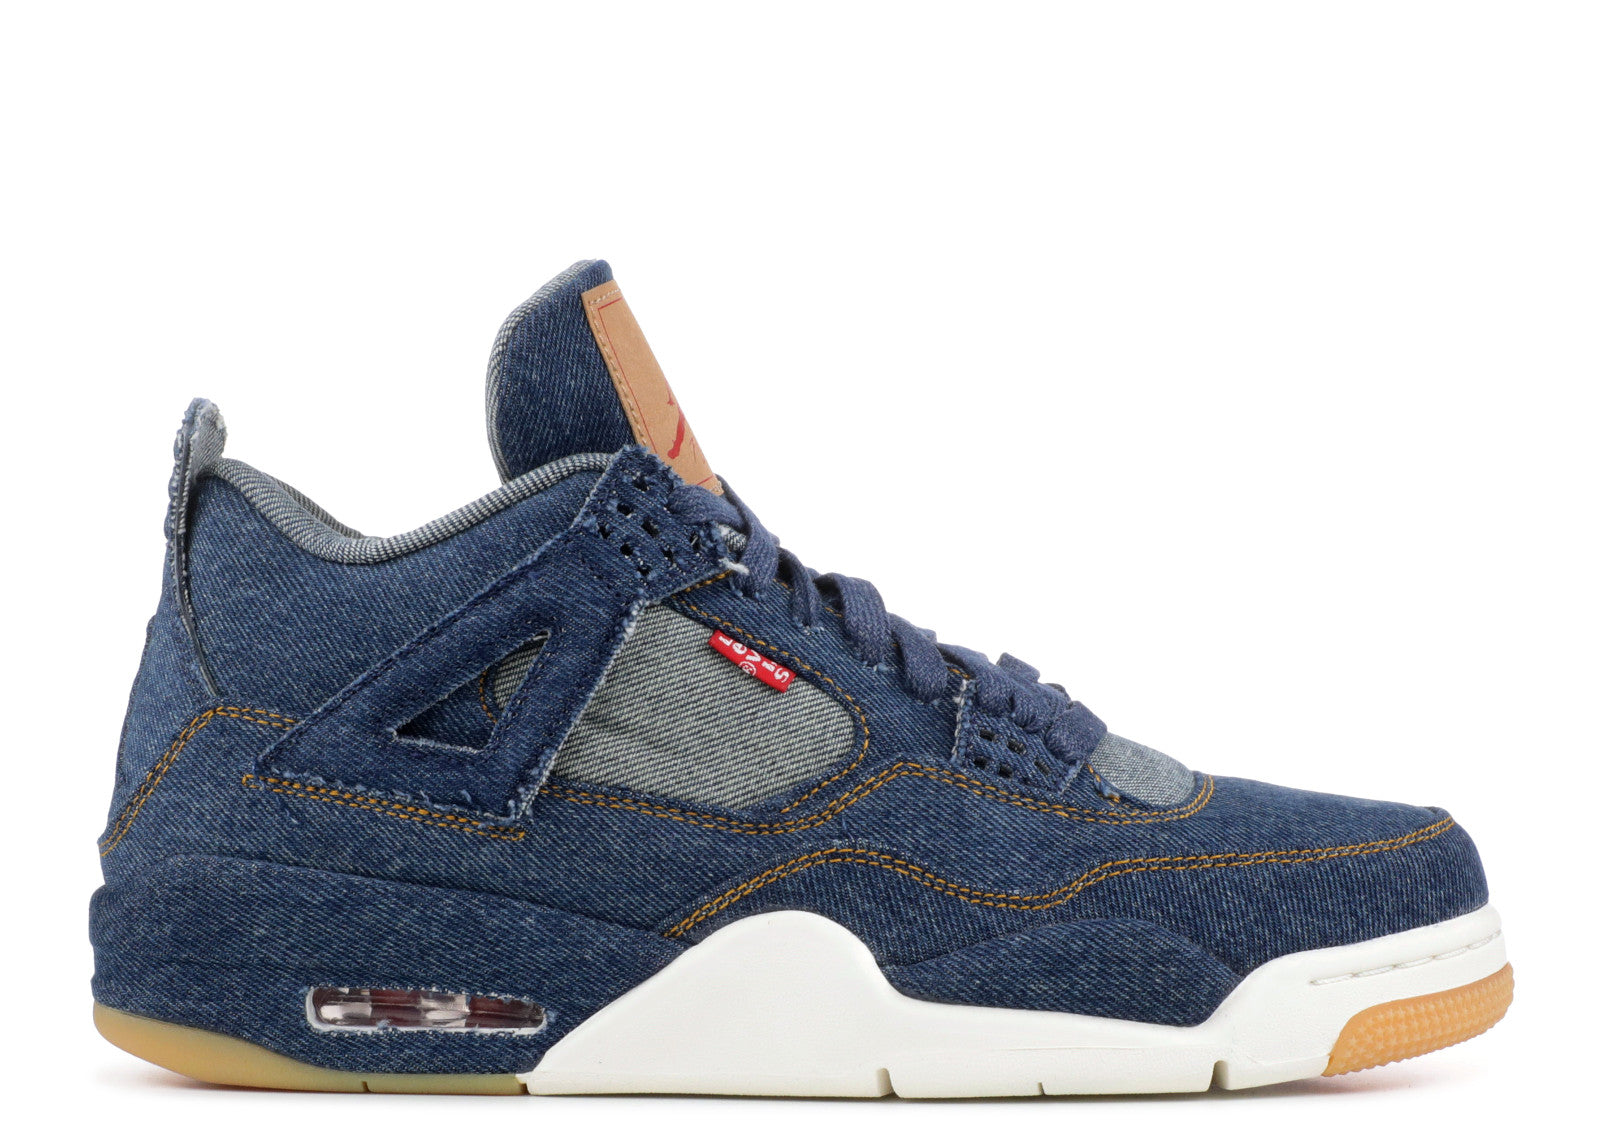 Air Jordan 4 Retro Levis Denim